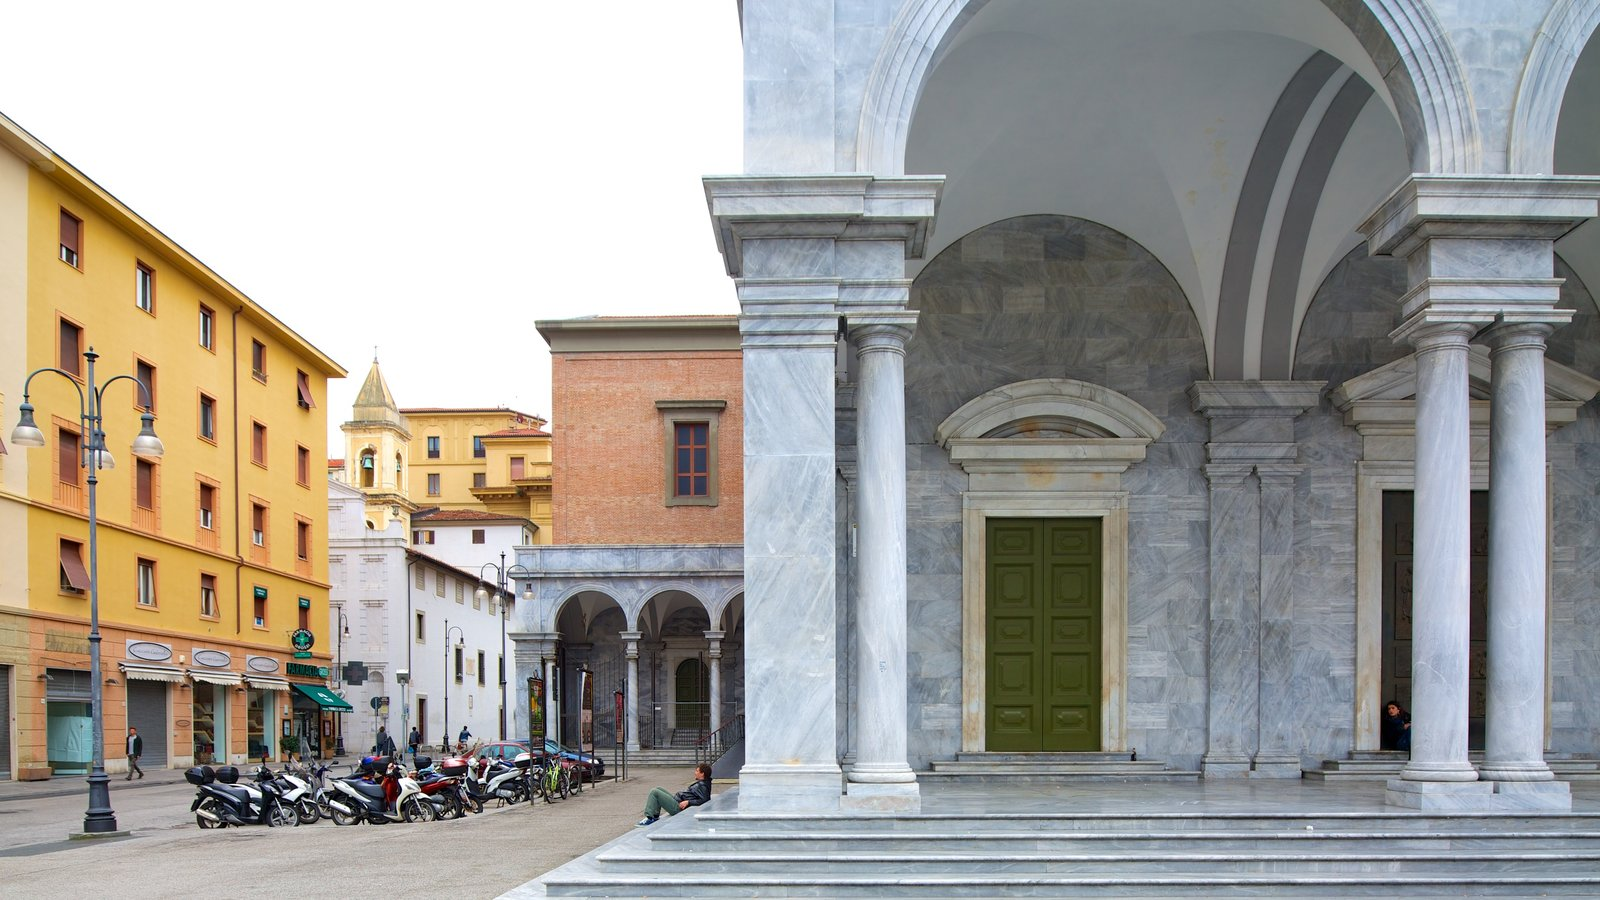 Palazzo Grande which includes a city and heritage architecture